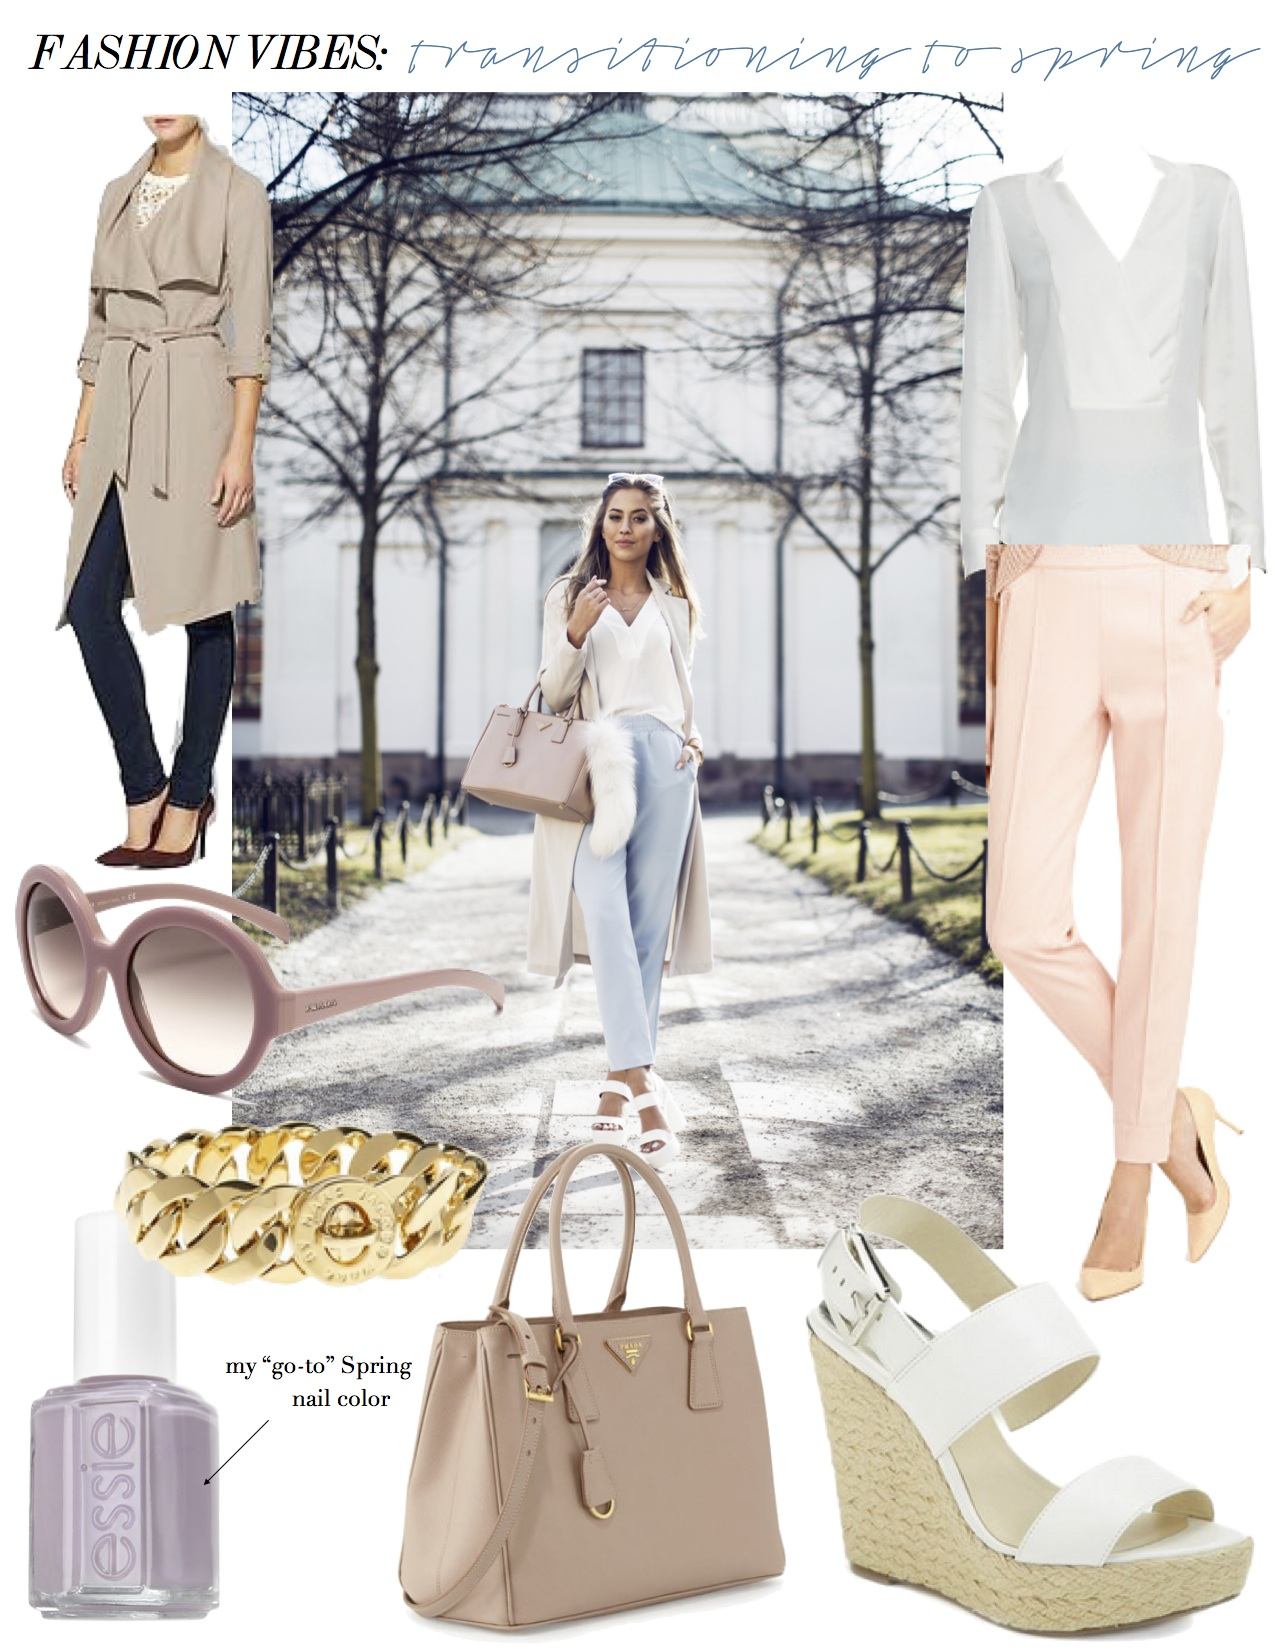 fashion vibes: pastels